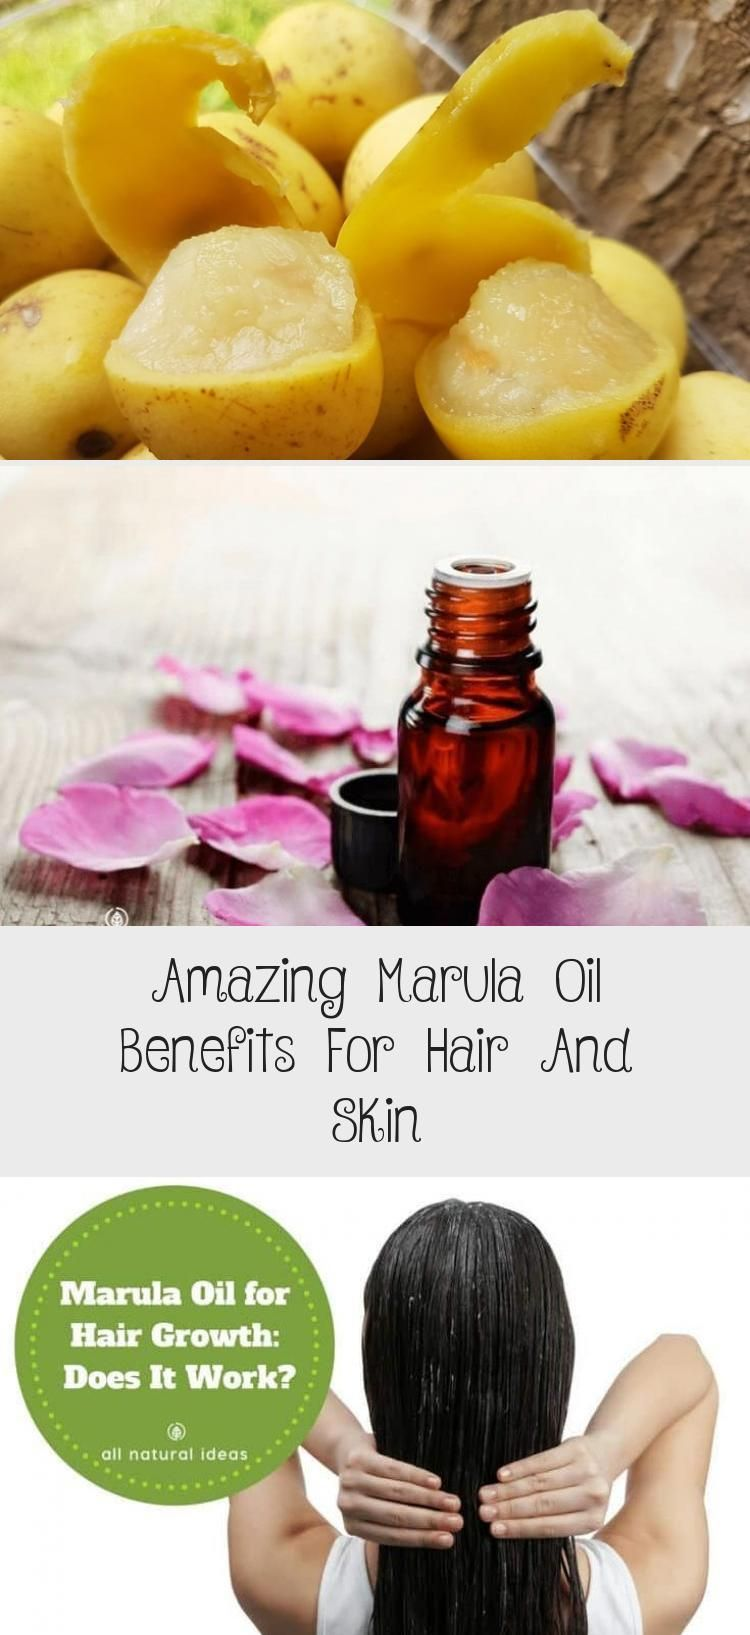 Hair Supplement} and Using marula oil for hair growth is becoming more popular. But does it really work and are the benefits any different than using other oils such as argan? #hair #hairgrowth   allnaturalideas.com via @allnaturalideas #hairgrowthFoods #hairgrowthPictures #hairgrowthInAYear #hairgrowthSpray #hairgrowthHacks #fasterhairgrowth Using marula oil for hair growth is becoming more popular. But does it really work and are the benefits any different than using other oils such as argan? #hair #hairgrowth   a